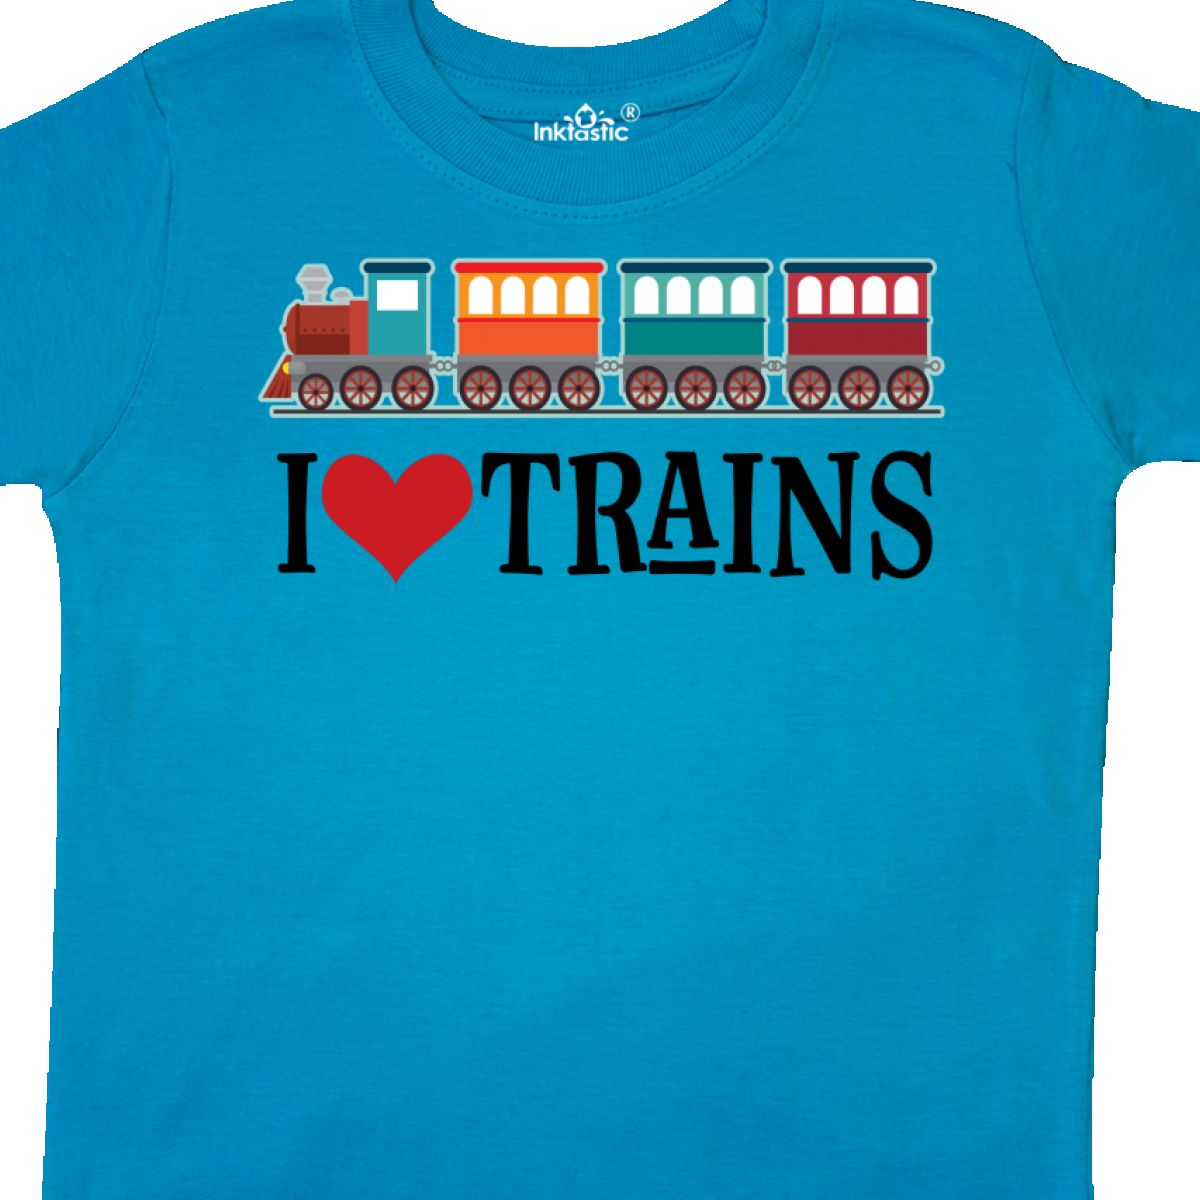 Inktastic-I-Love-Trains-Toddler-T-Shirt-Choo-Childs-Clothing-Apparel-Railfan-Set thumbnail 26